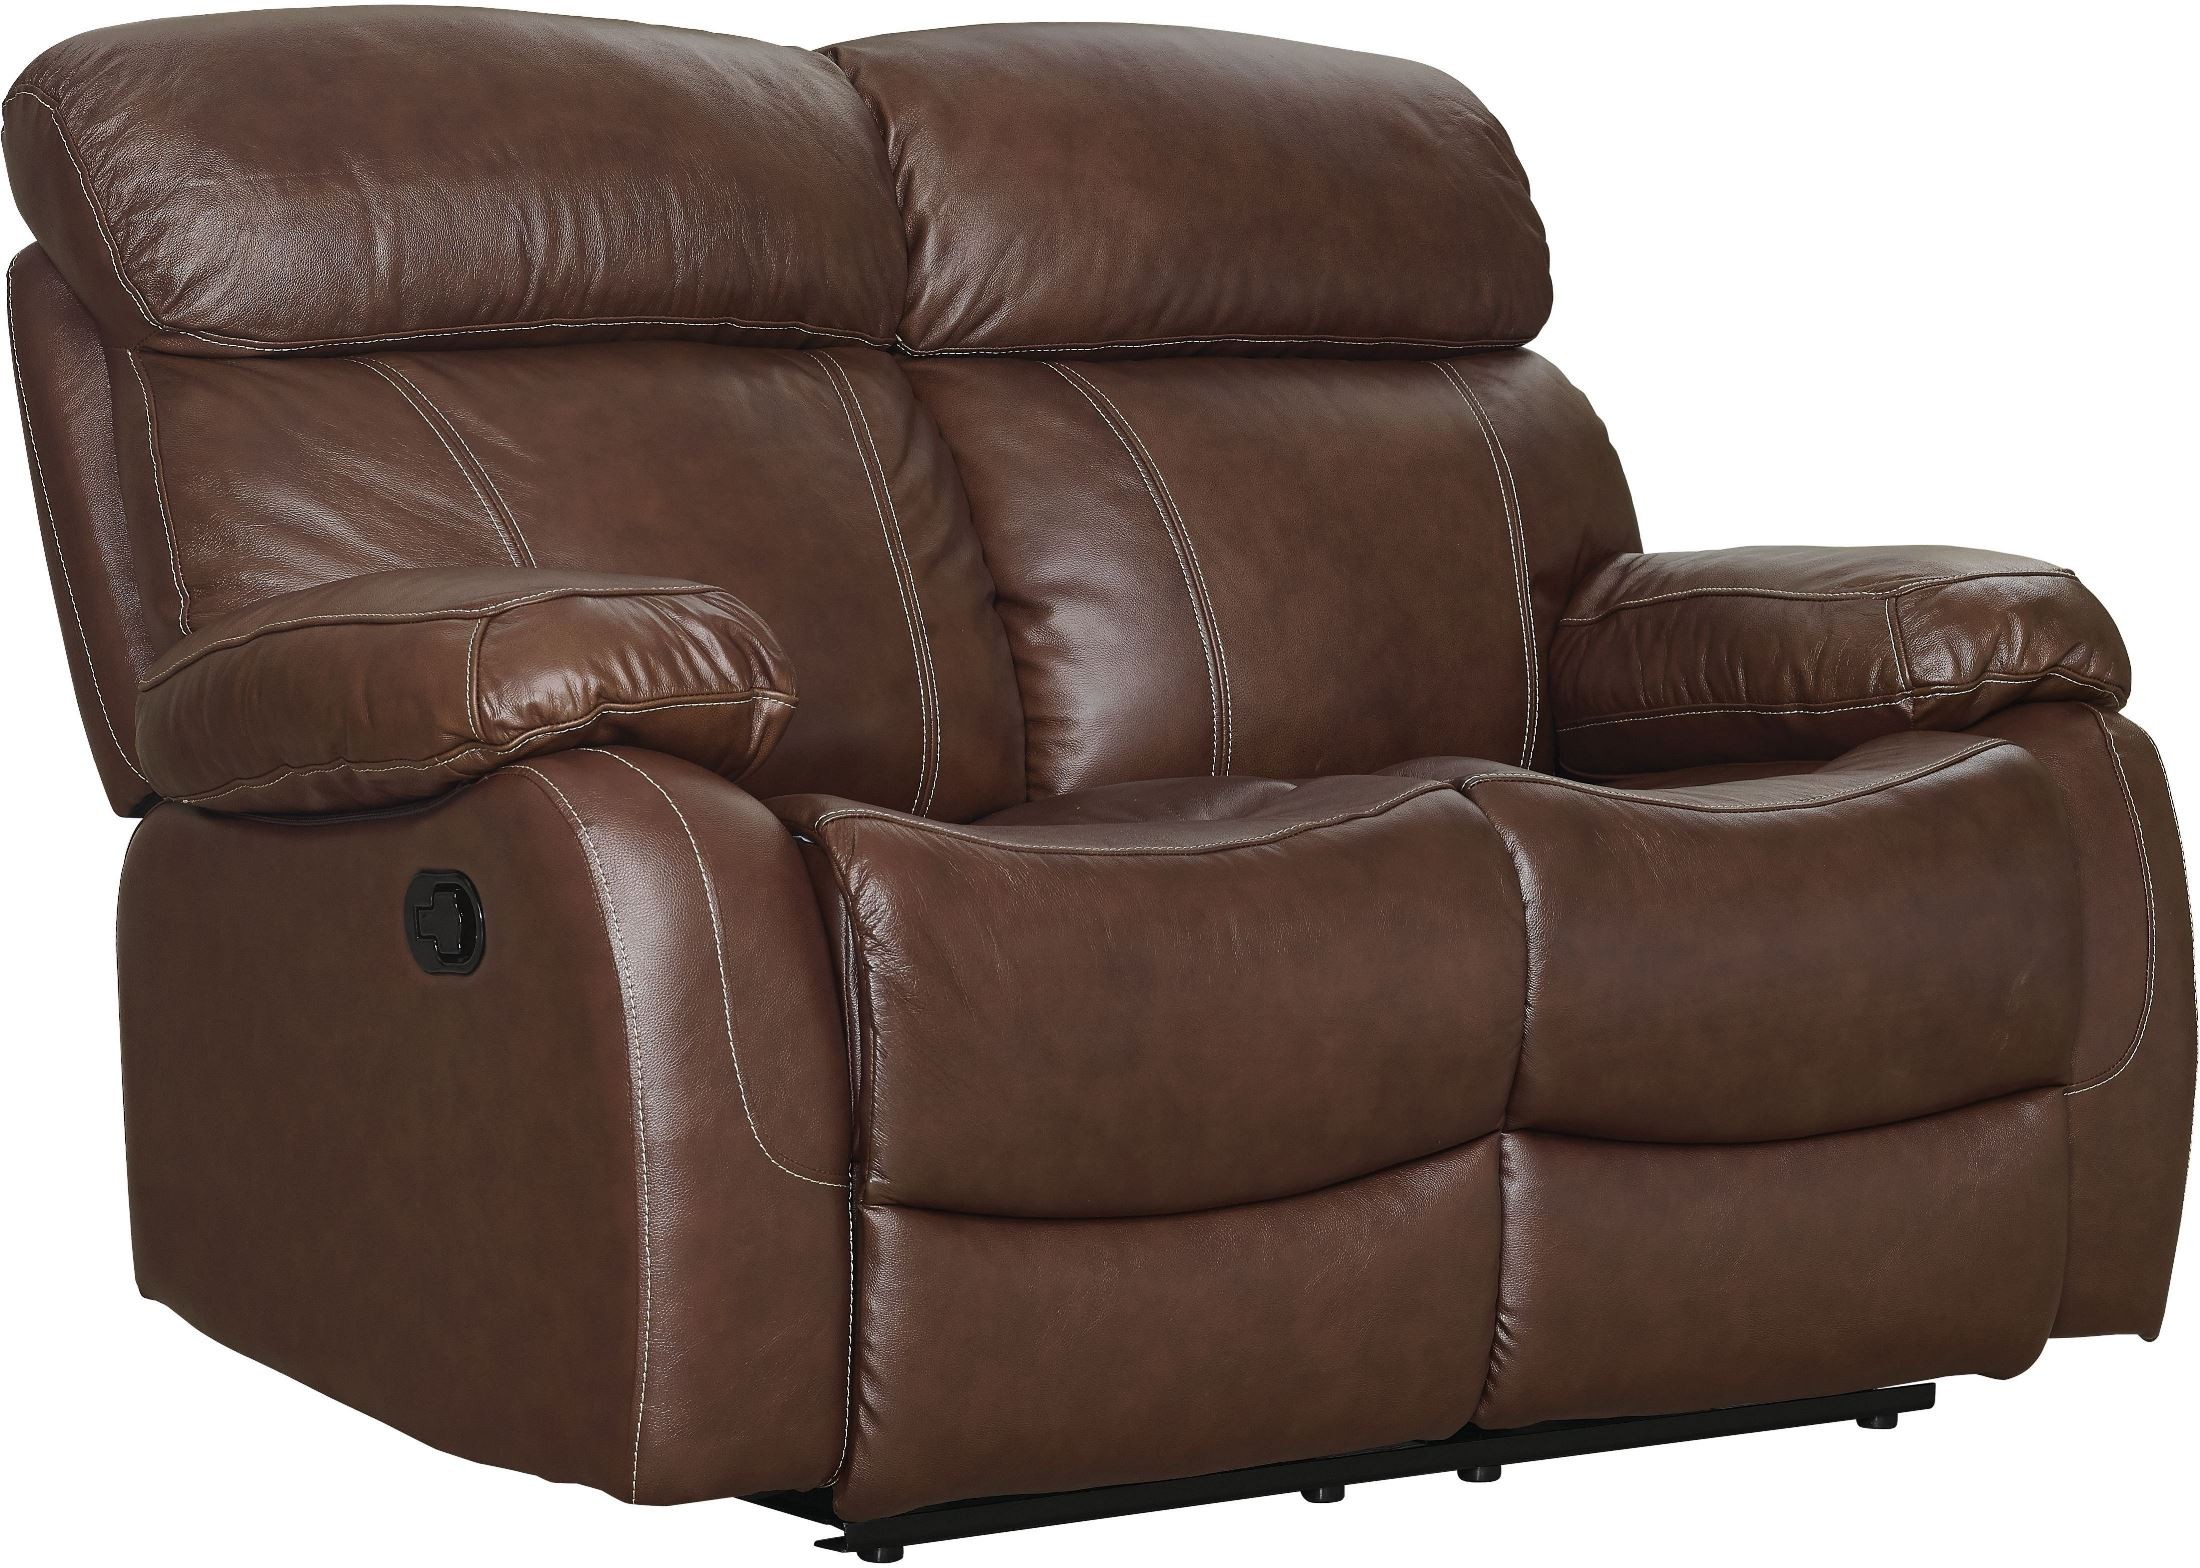 light brown leather reclining sofa 3 cushion sleeper slipcover dante living room set l2041 30 lbn